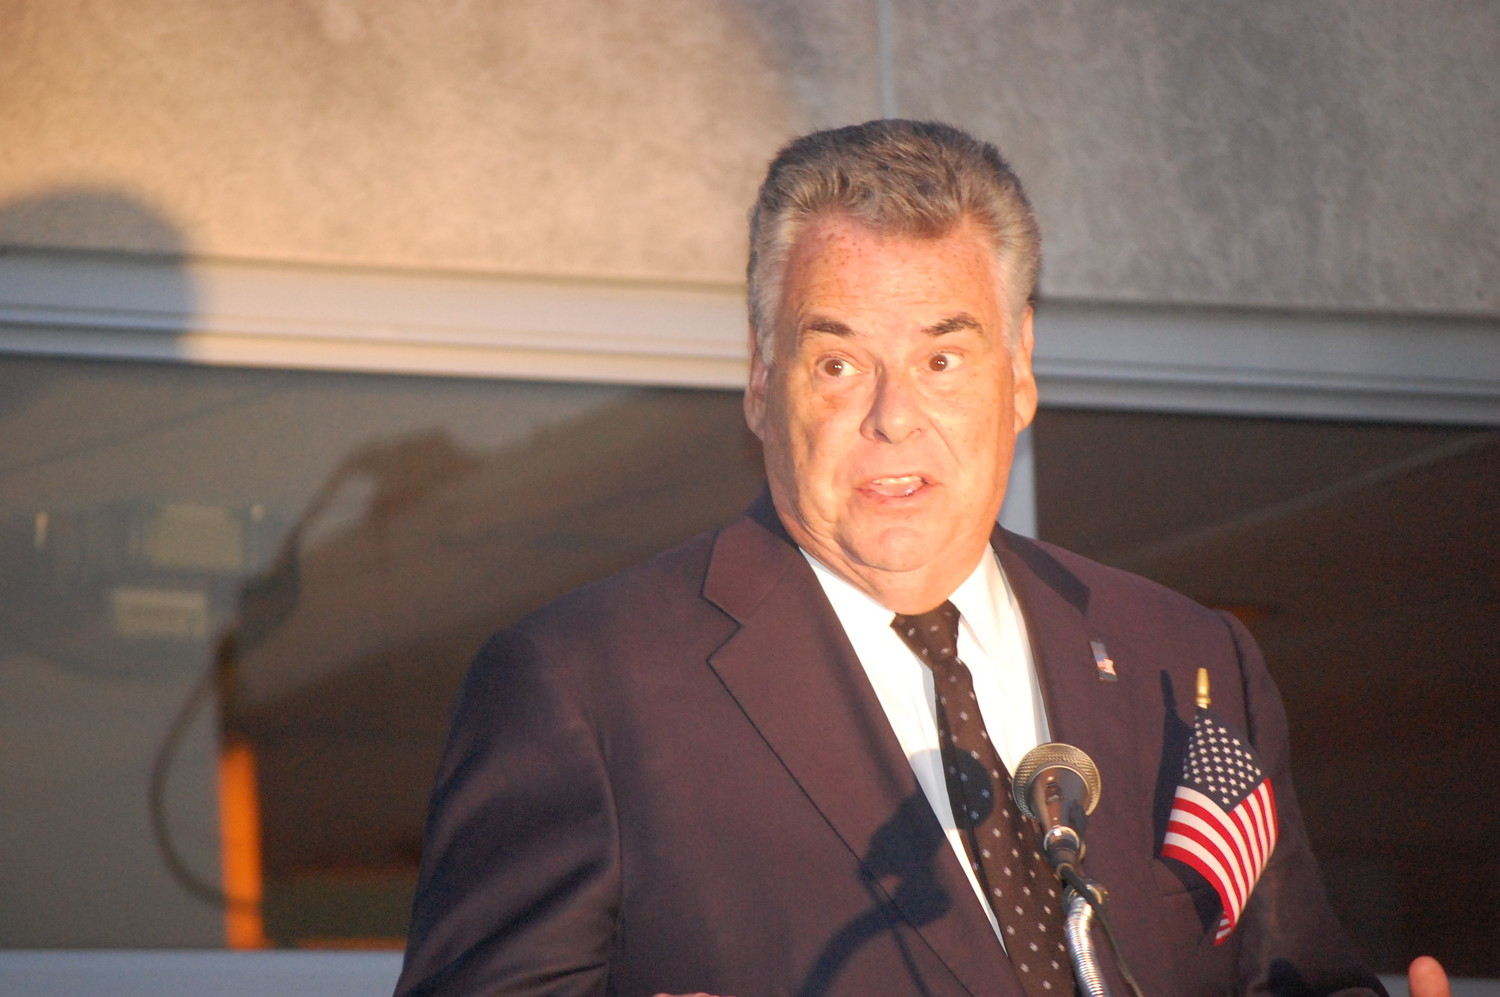 U.S. Rep Peter King took part in a meeting with President Trump and members of Congress in Washington, D.C. last week to discuss ongoing efforts to combat the deadly MS-13 gang.